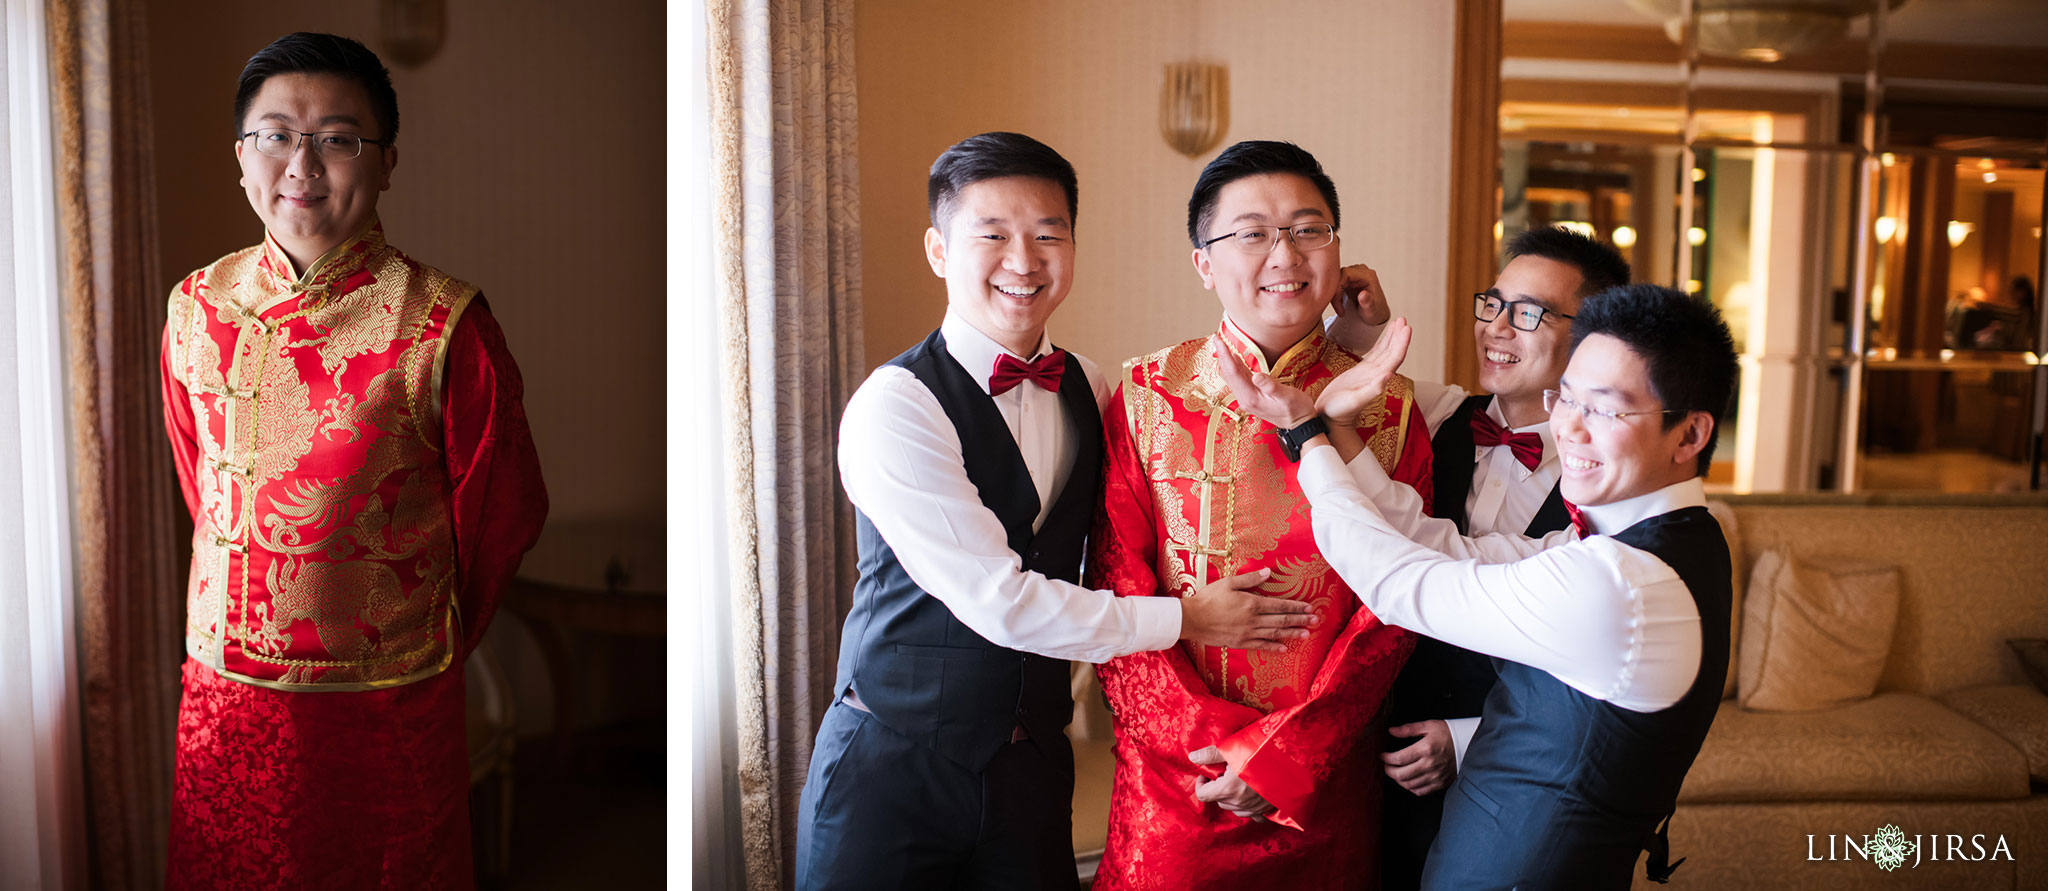 03 pelican hill orange county chinese wedding photography